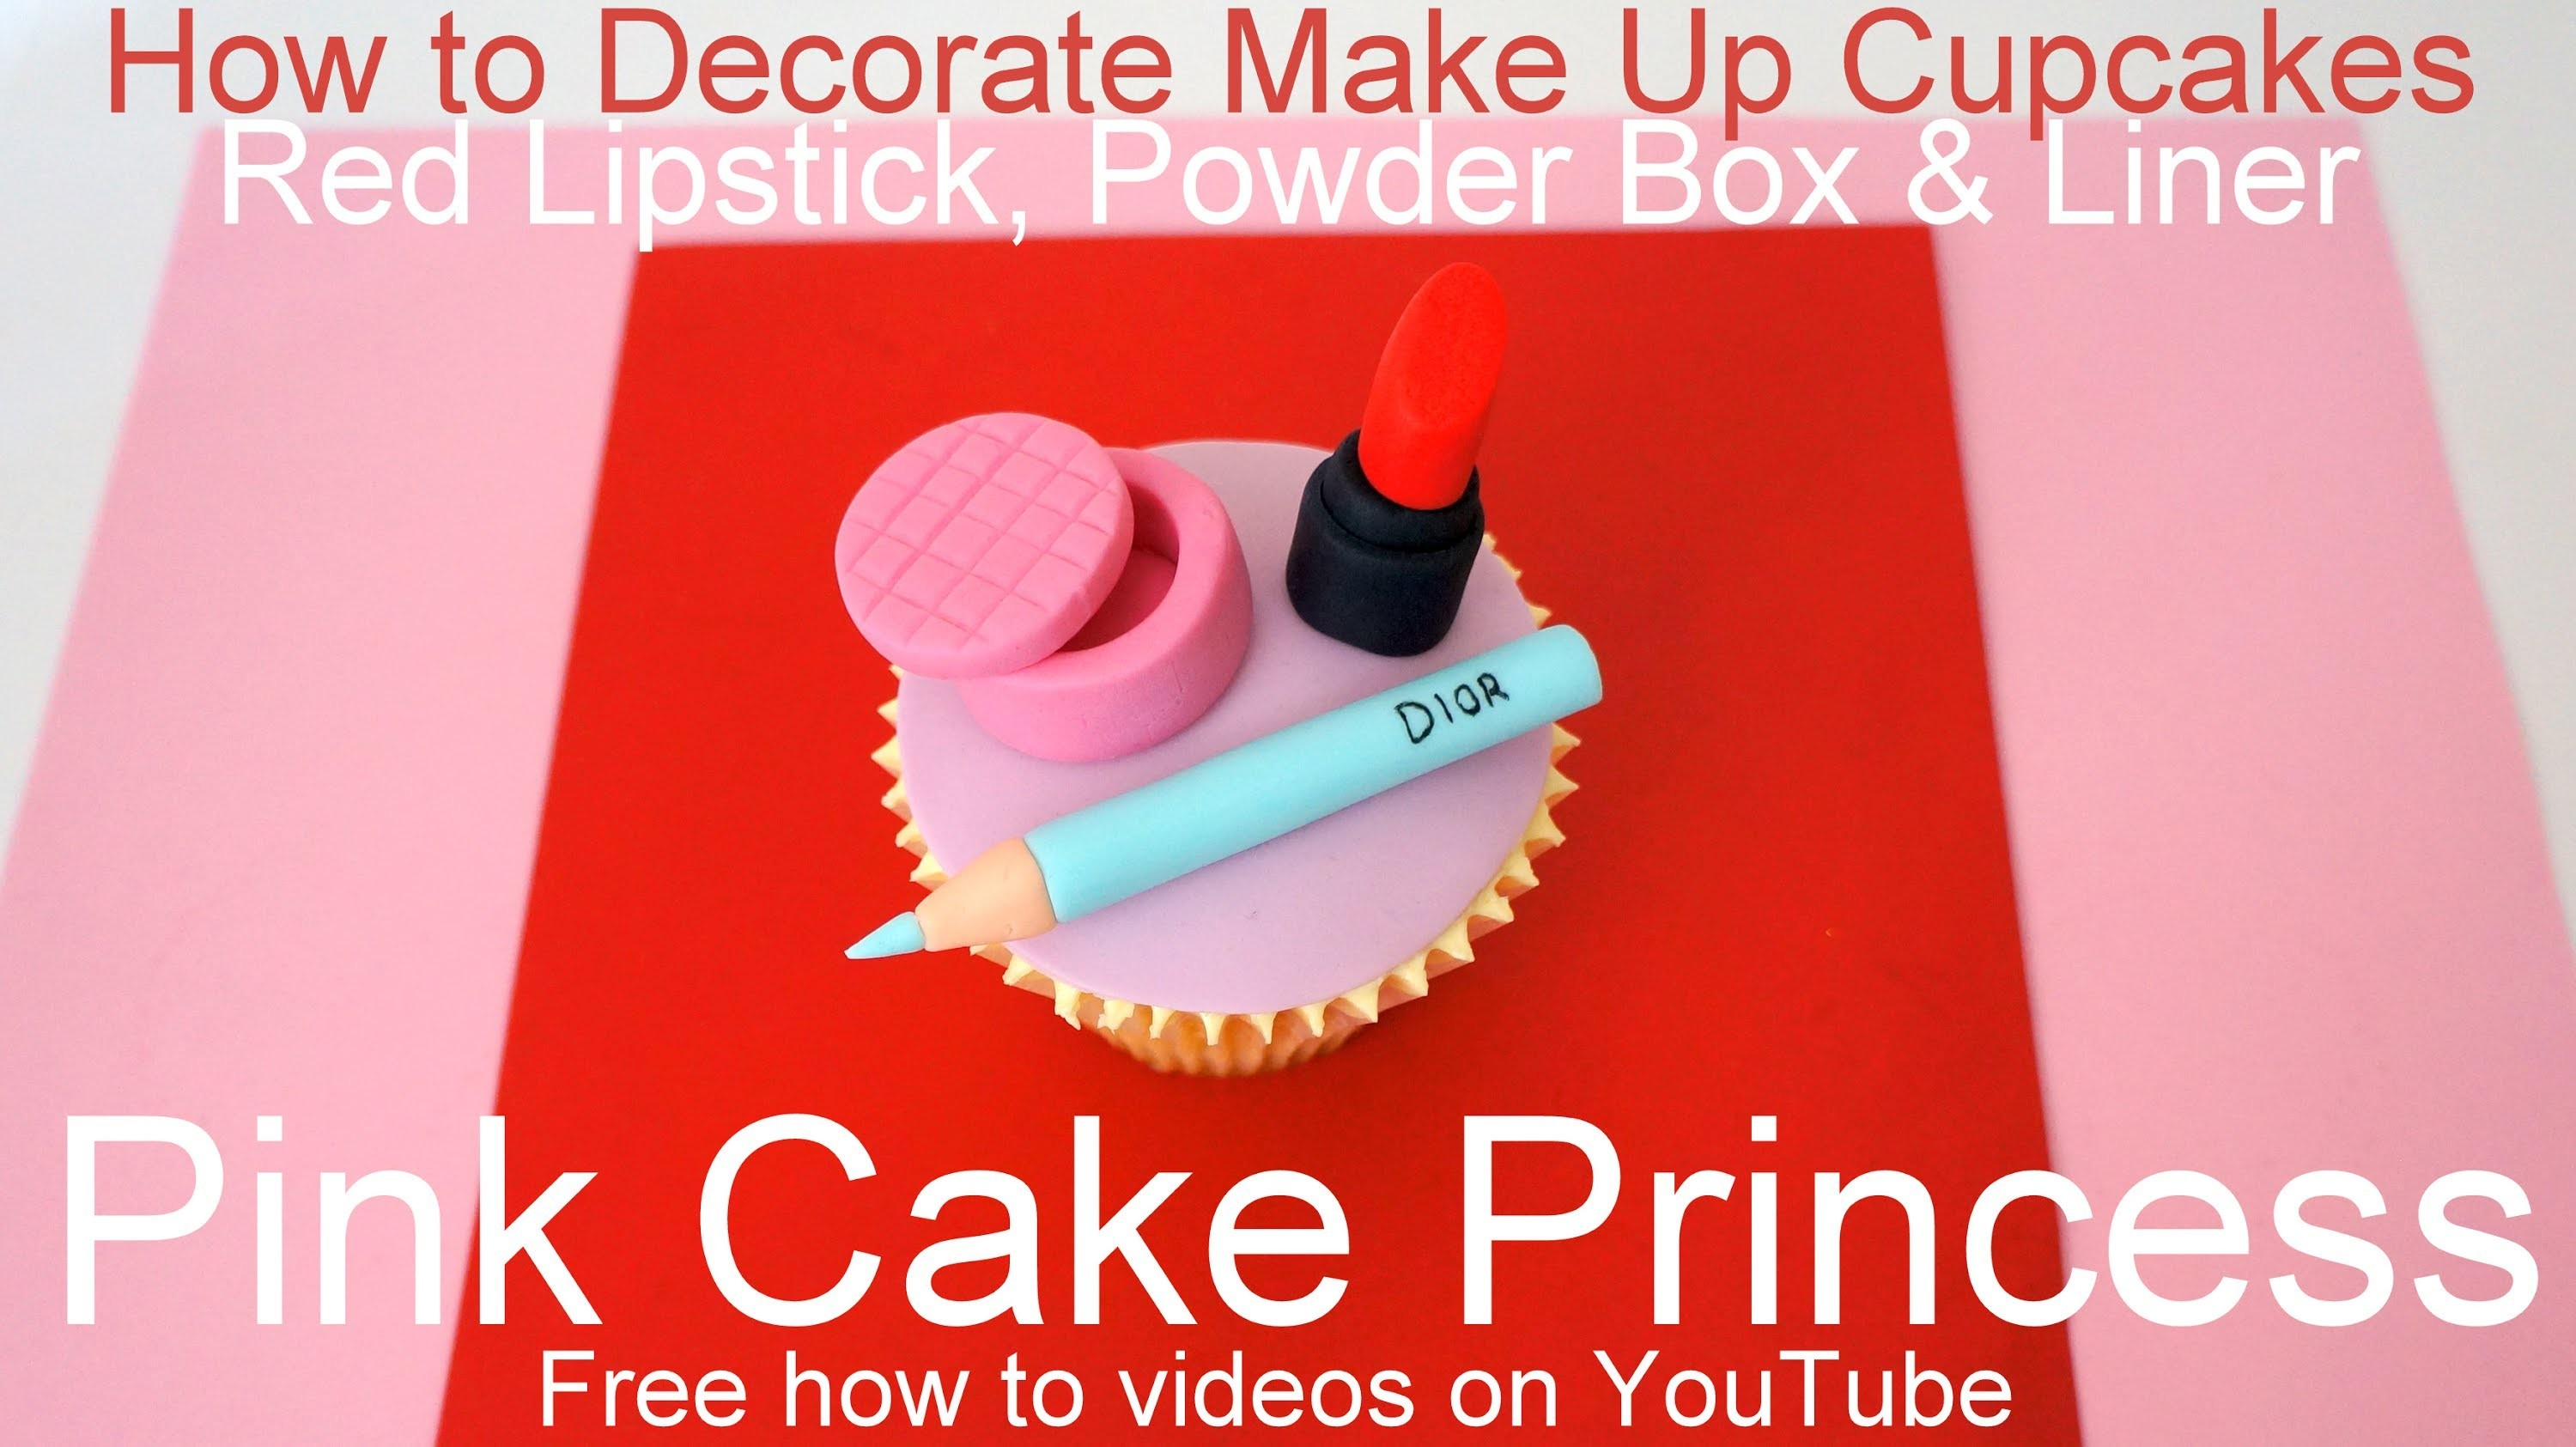 How to Make Edible Cosmetics Cupcakes (4)